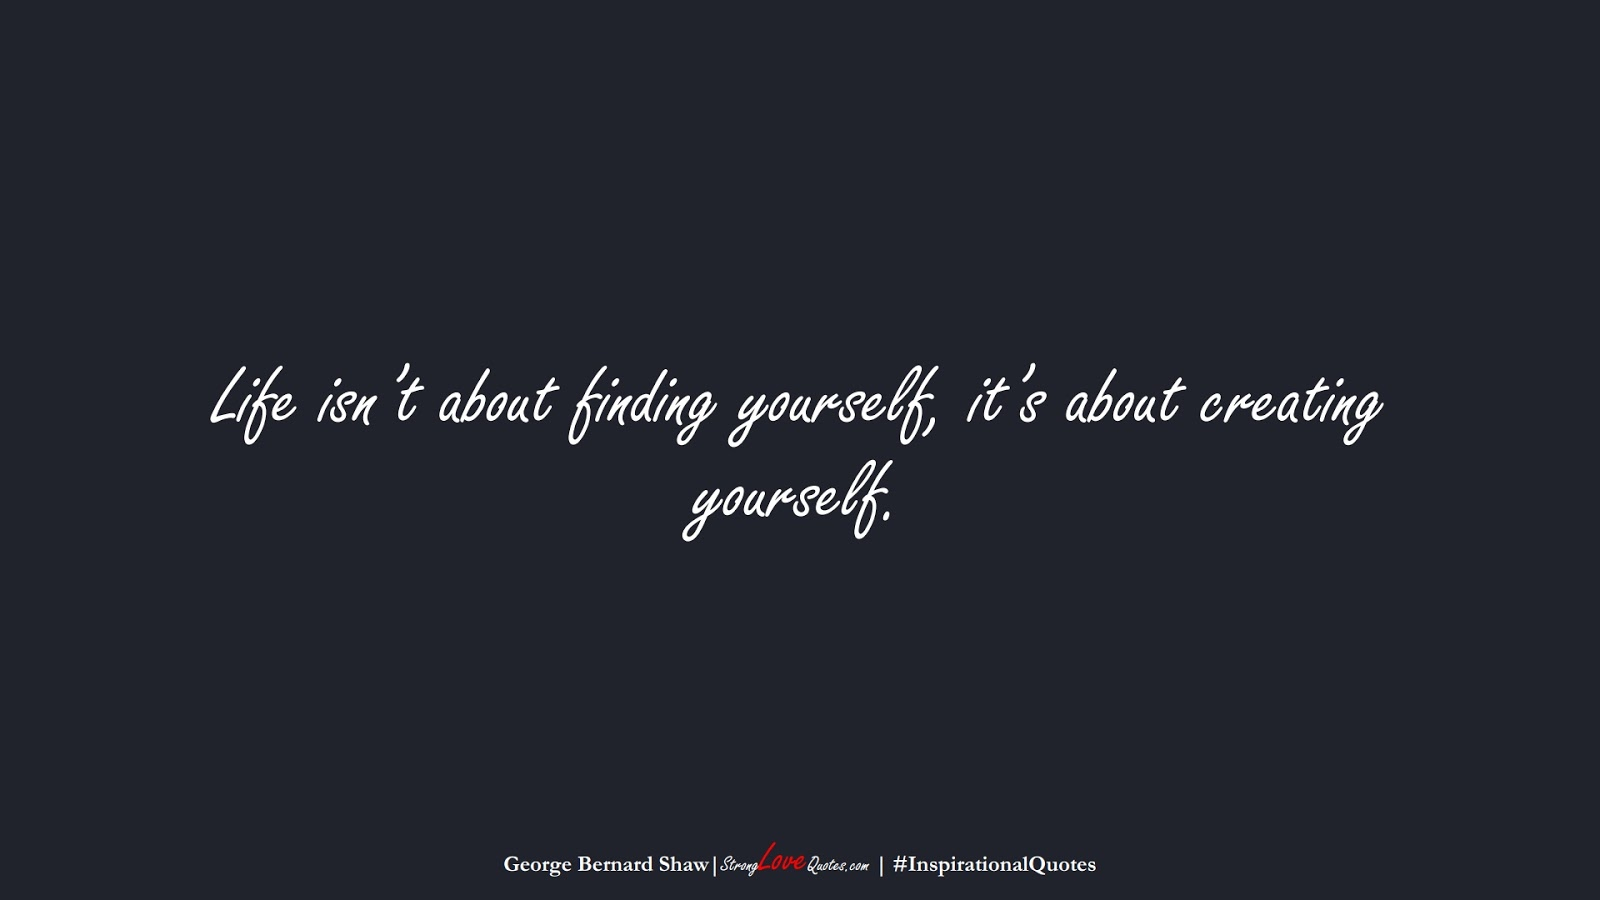 Life isn't about finding yourself, it's about creating yourself. (George Bernard Shaw);  #InspirationalQuotes